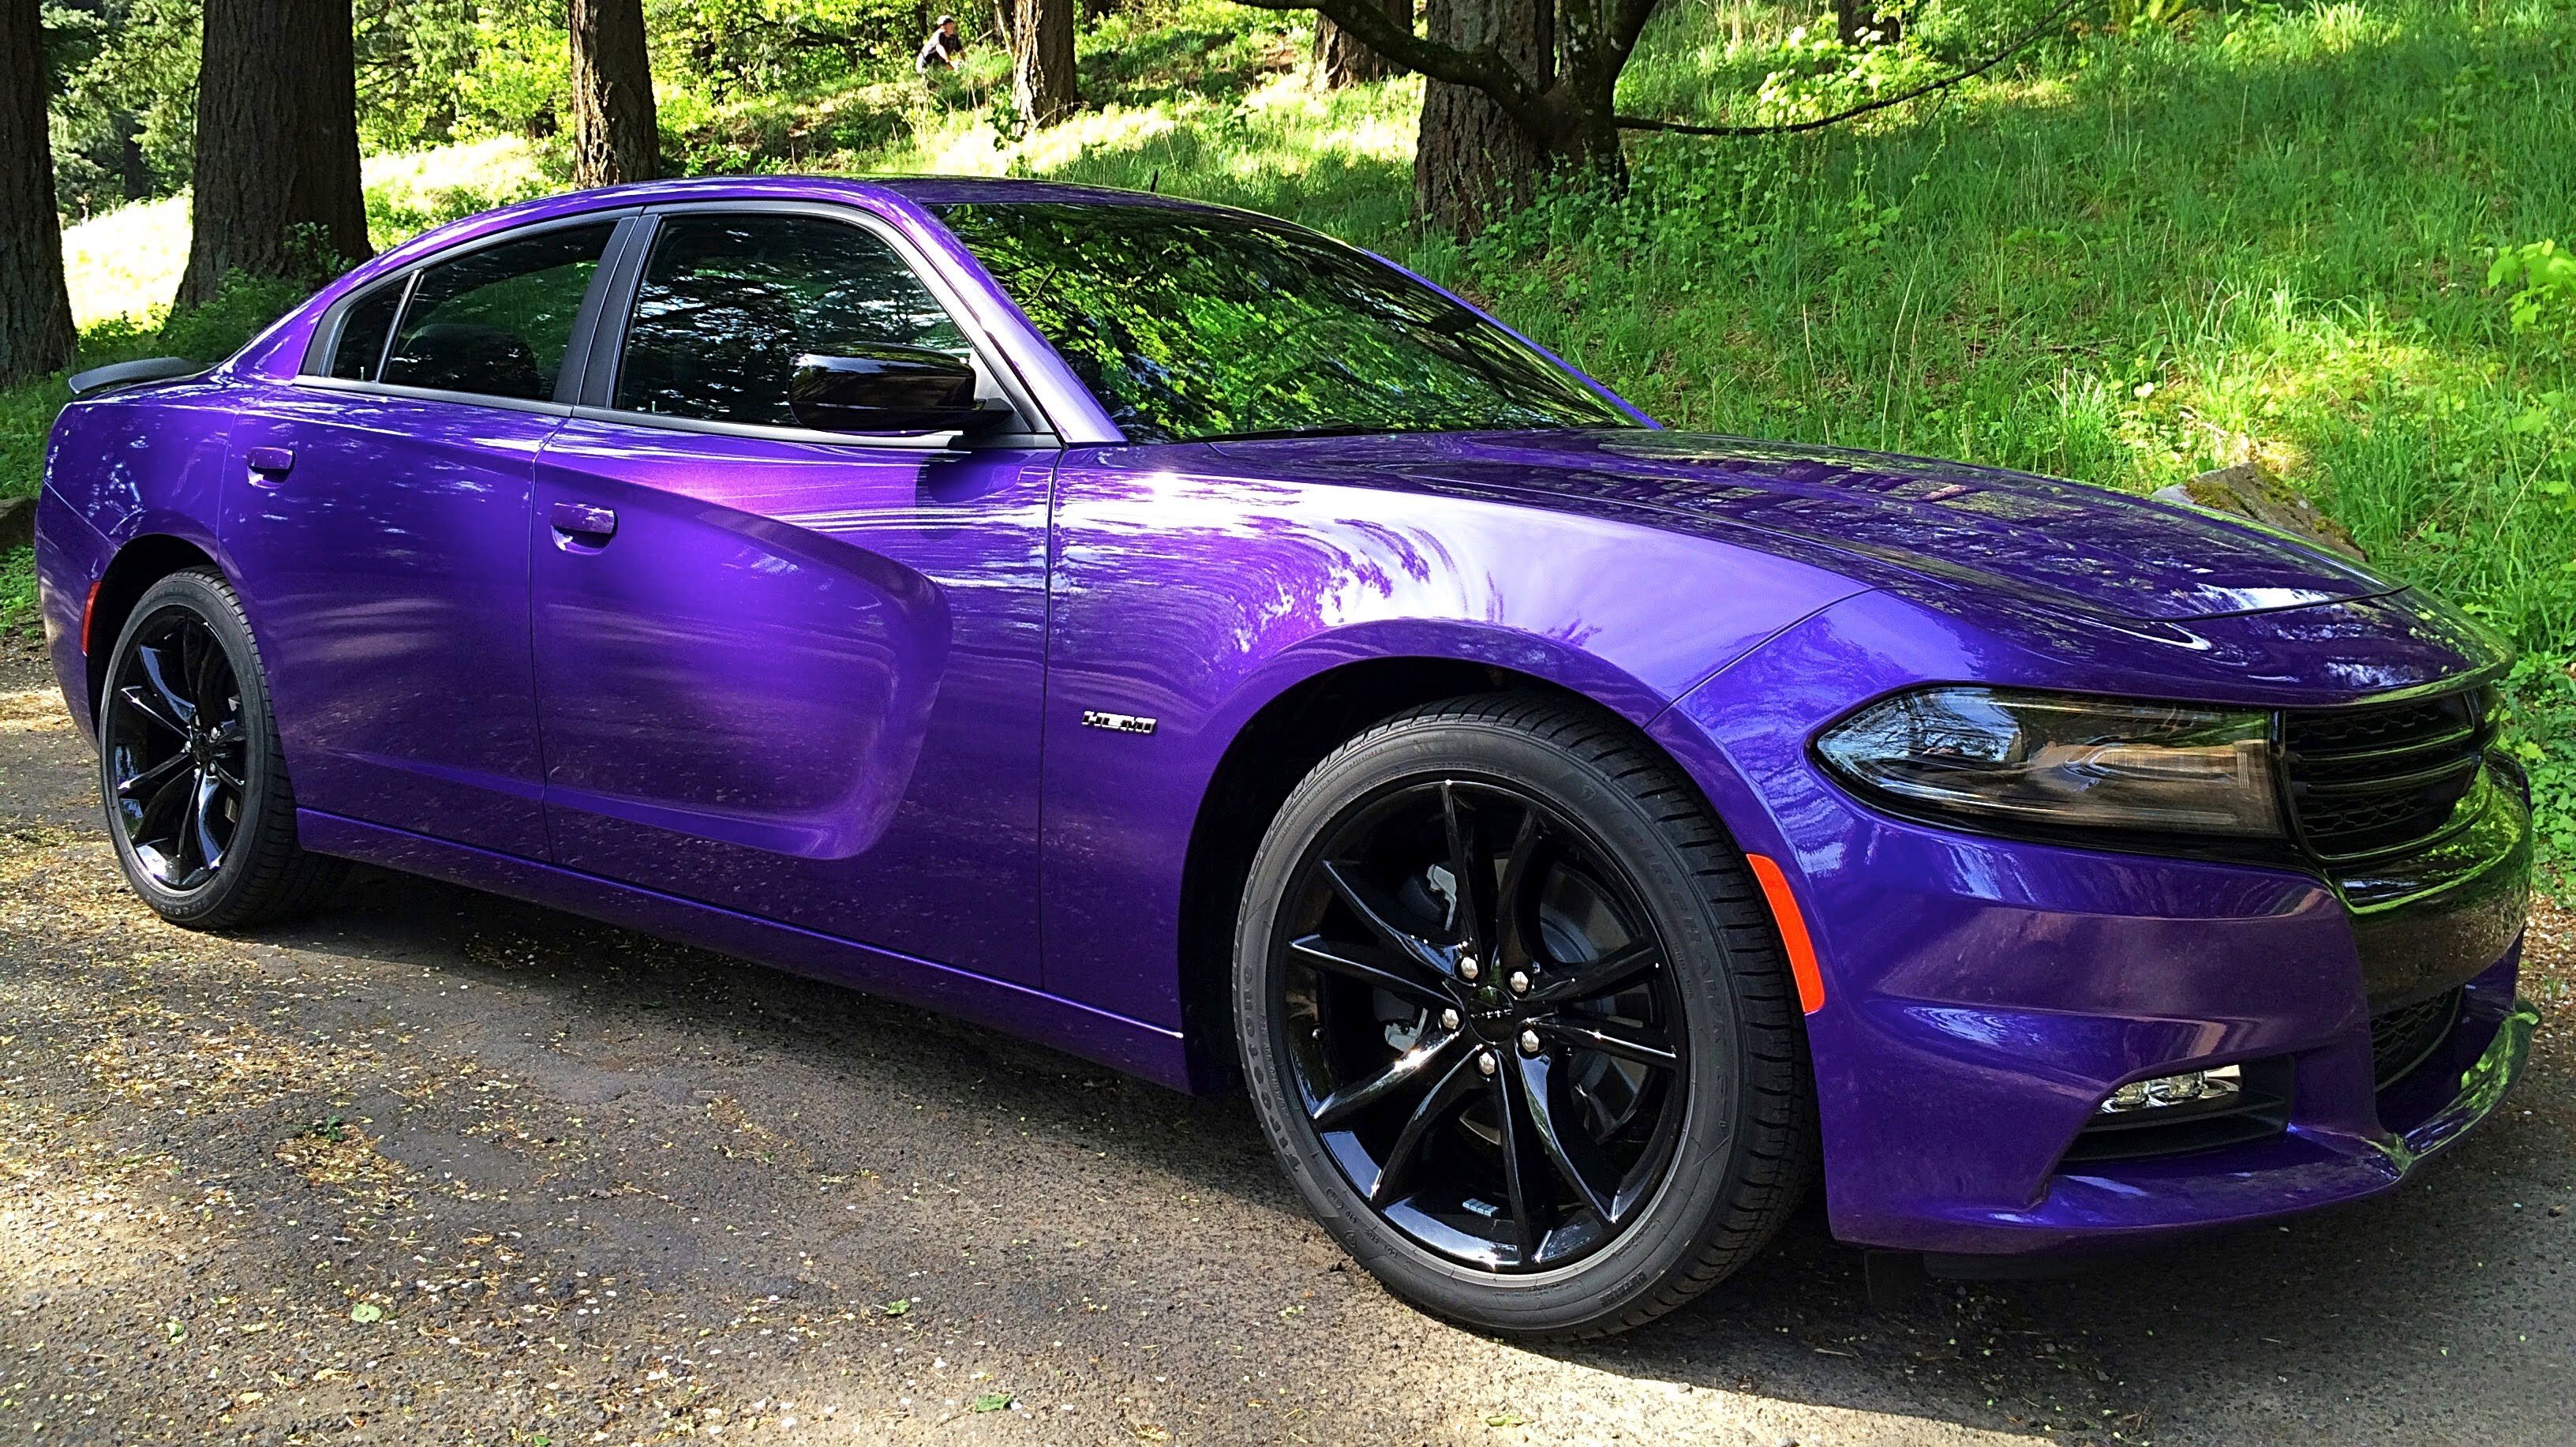 Dodge Charger Blacktop Wallpapers Vehicles Hq Dodge Charger Blacktop Pictures 4k Wallpapers 2019